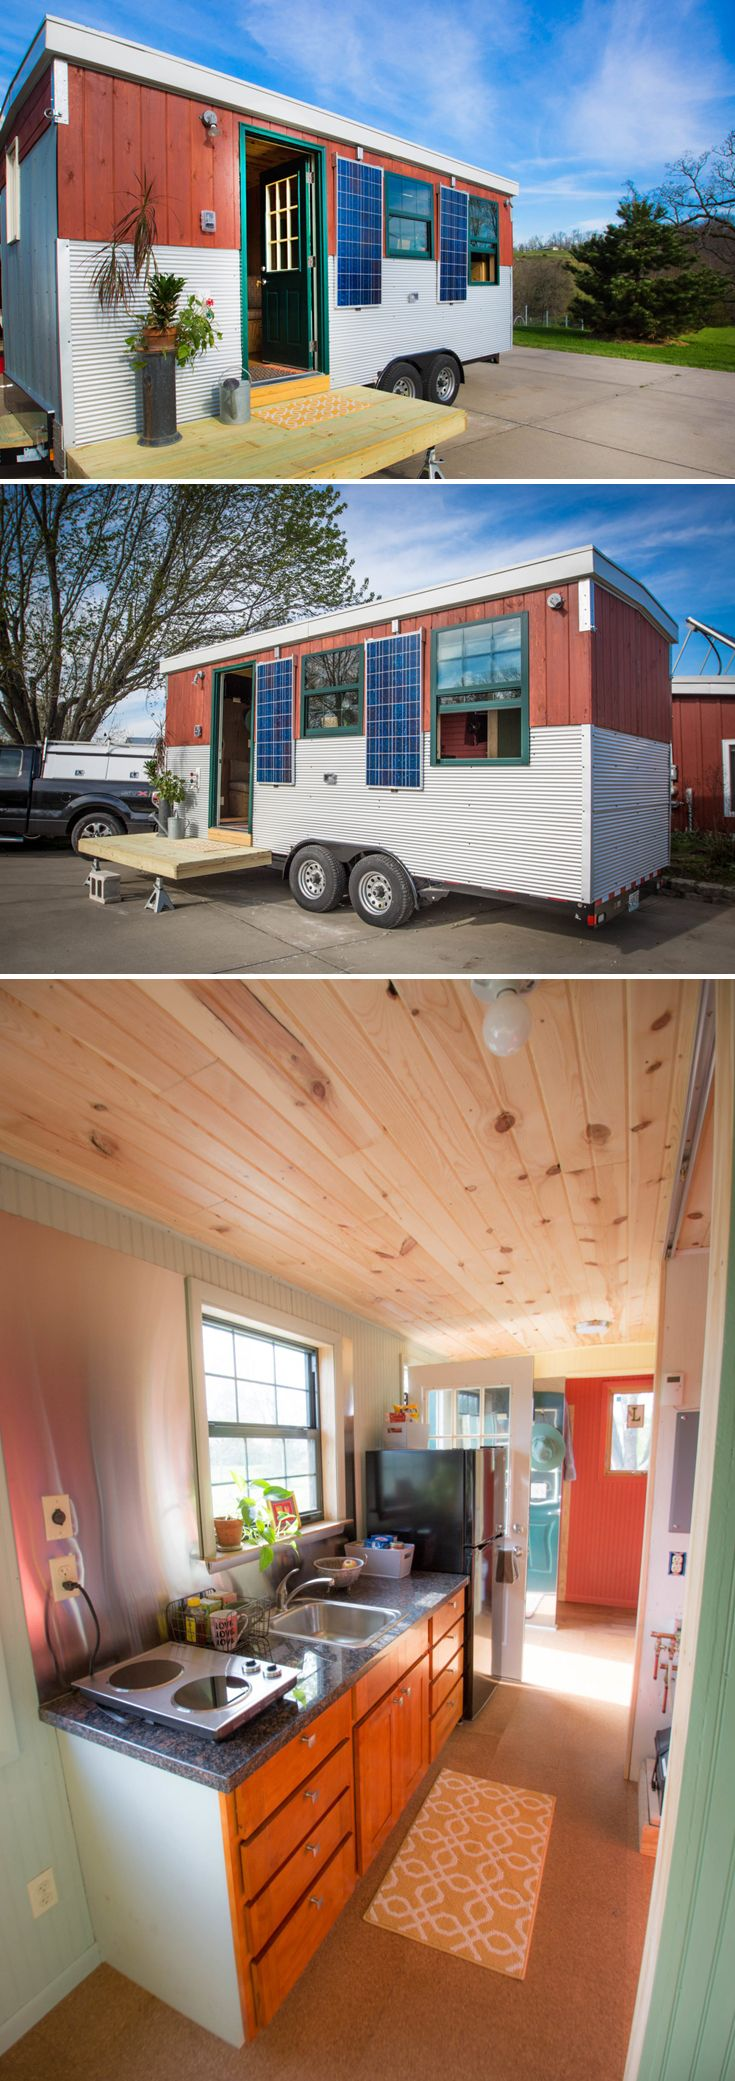 "Thermal solar and hydronics expert, Bob ""Hotrod"" Rohr, built this colorful tiny house, Starlighter, with a solar panel system and radiant walls and floors."